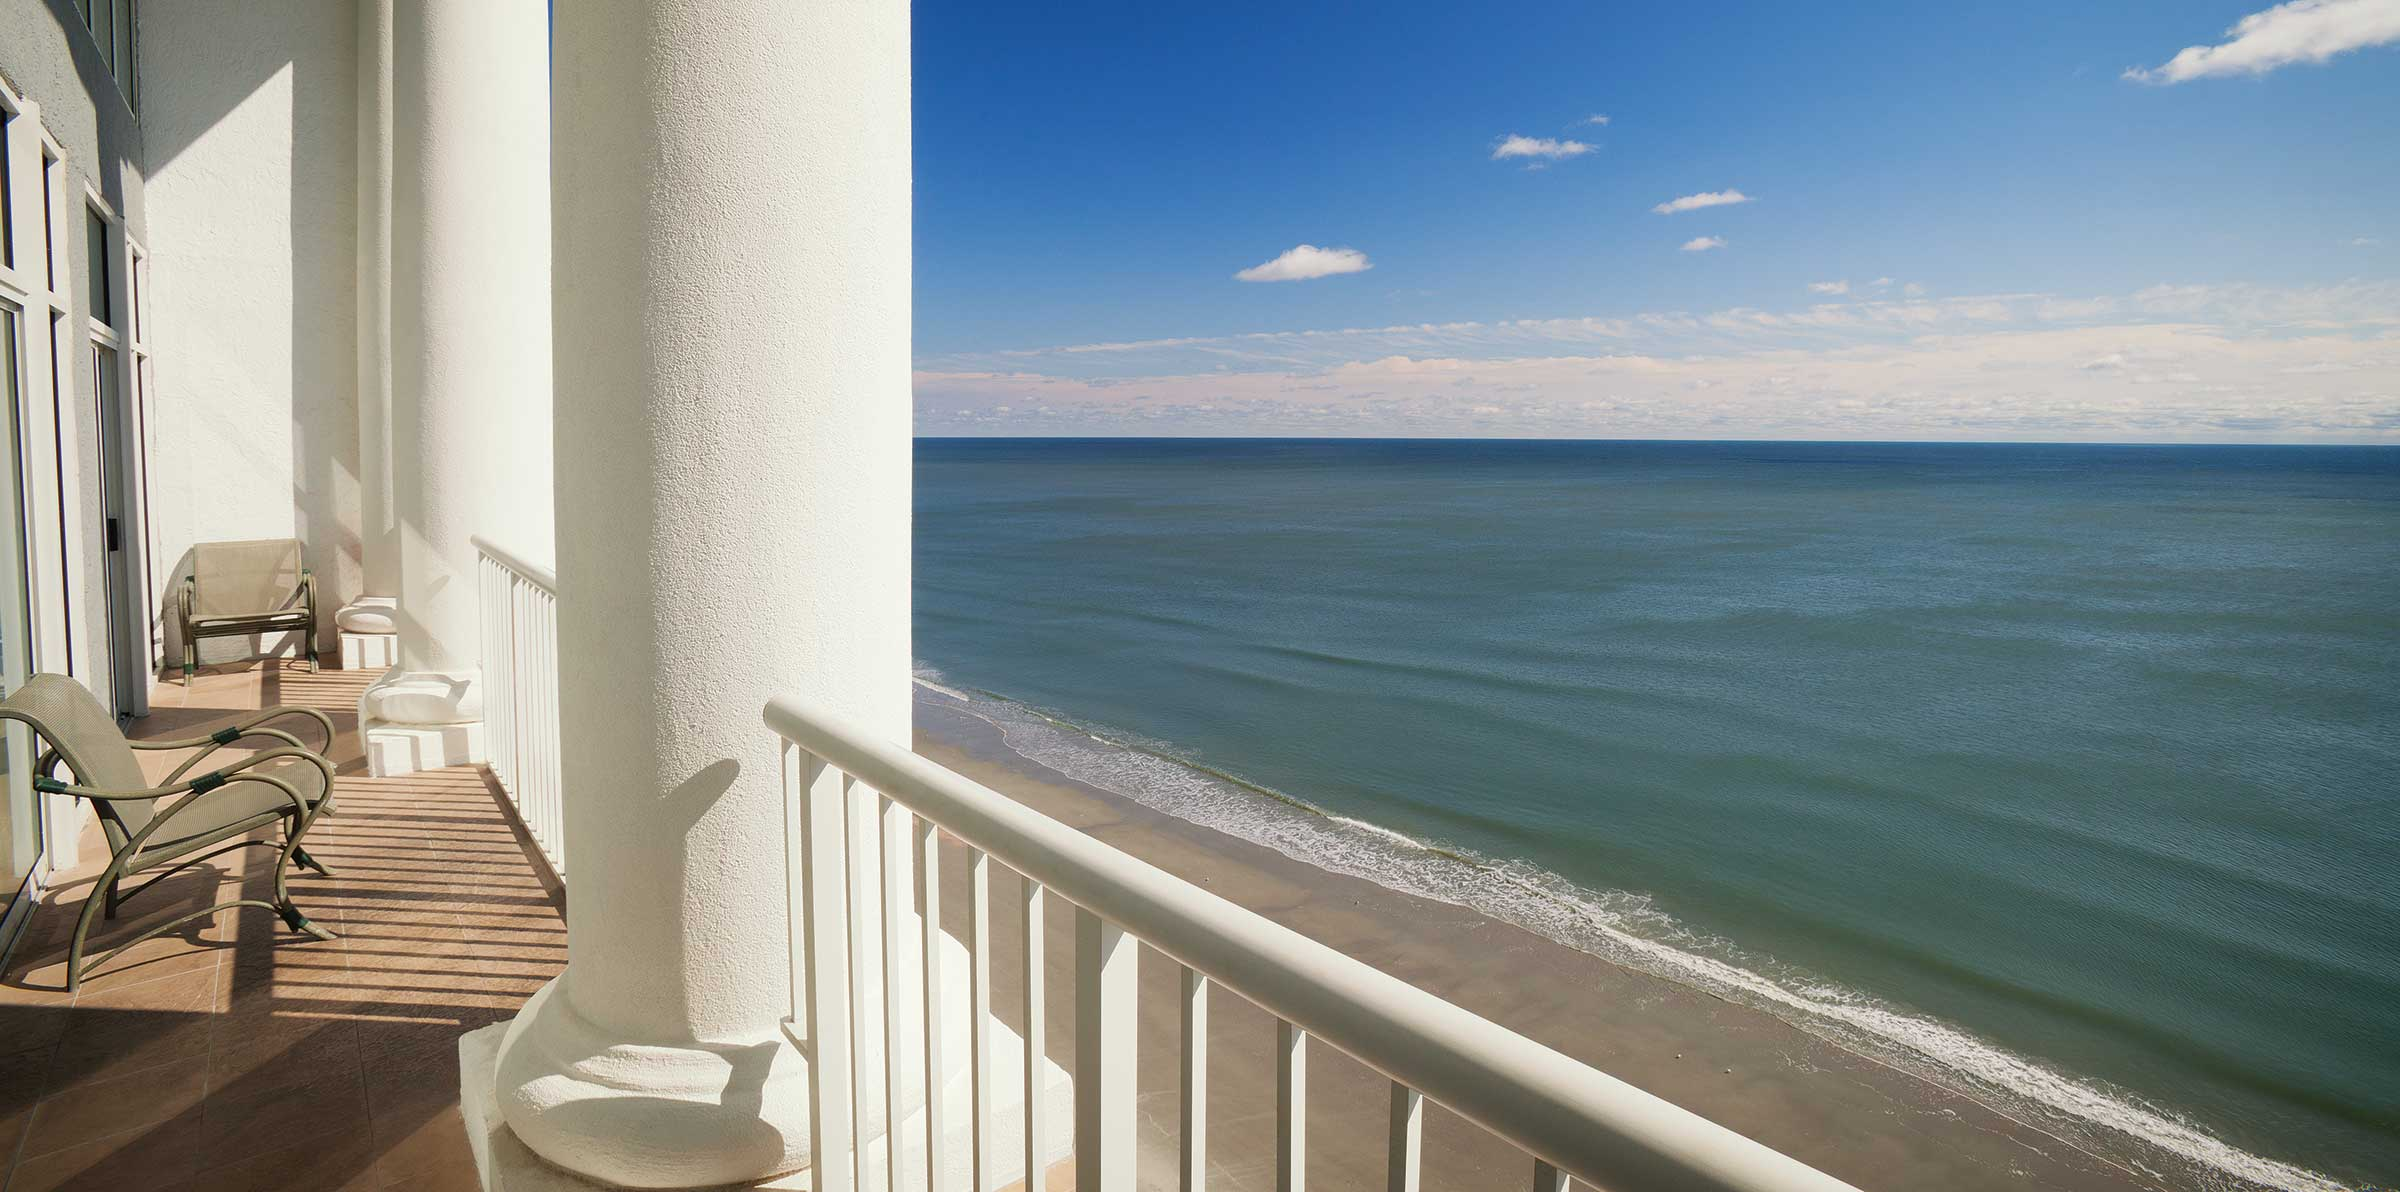 Seawatch Plantation 1 Bedroom 1 Bathroom photo 20365194